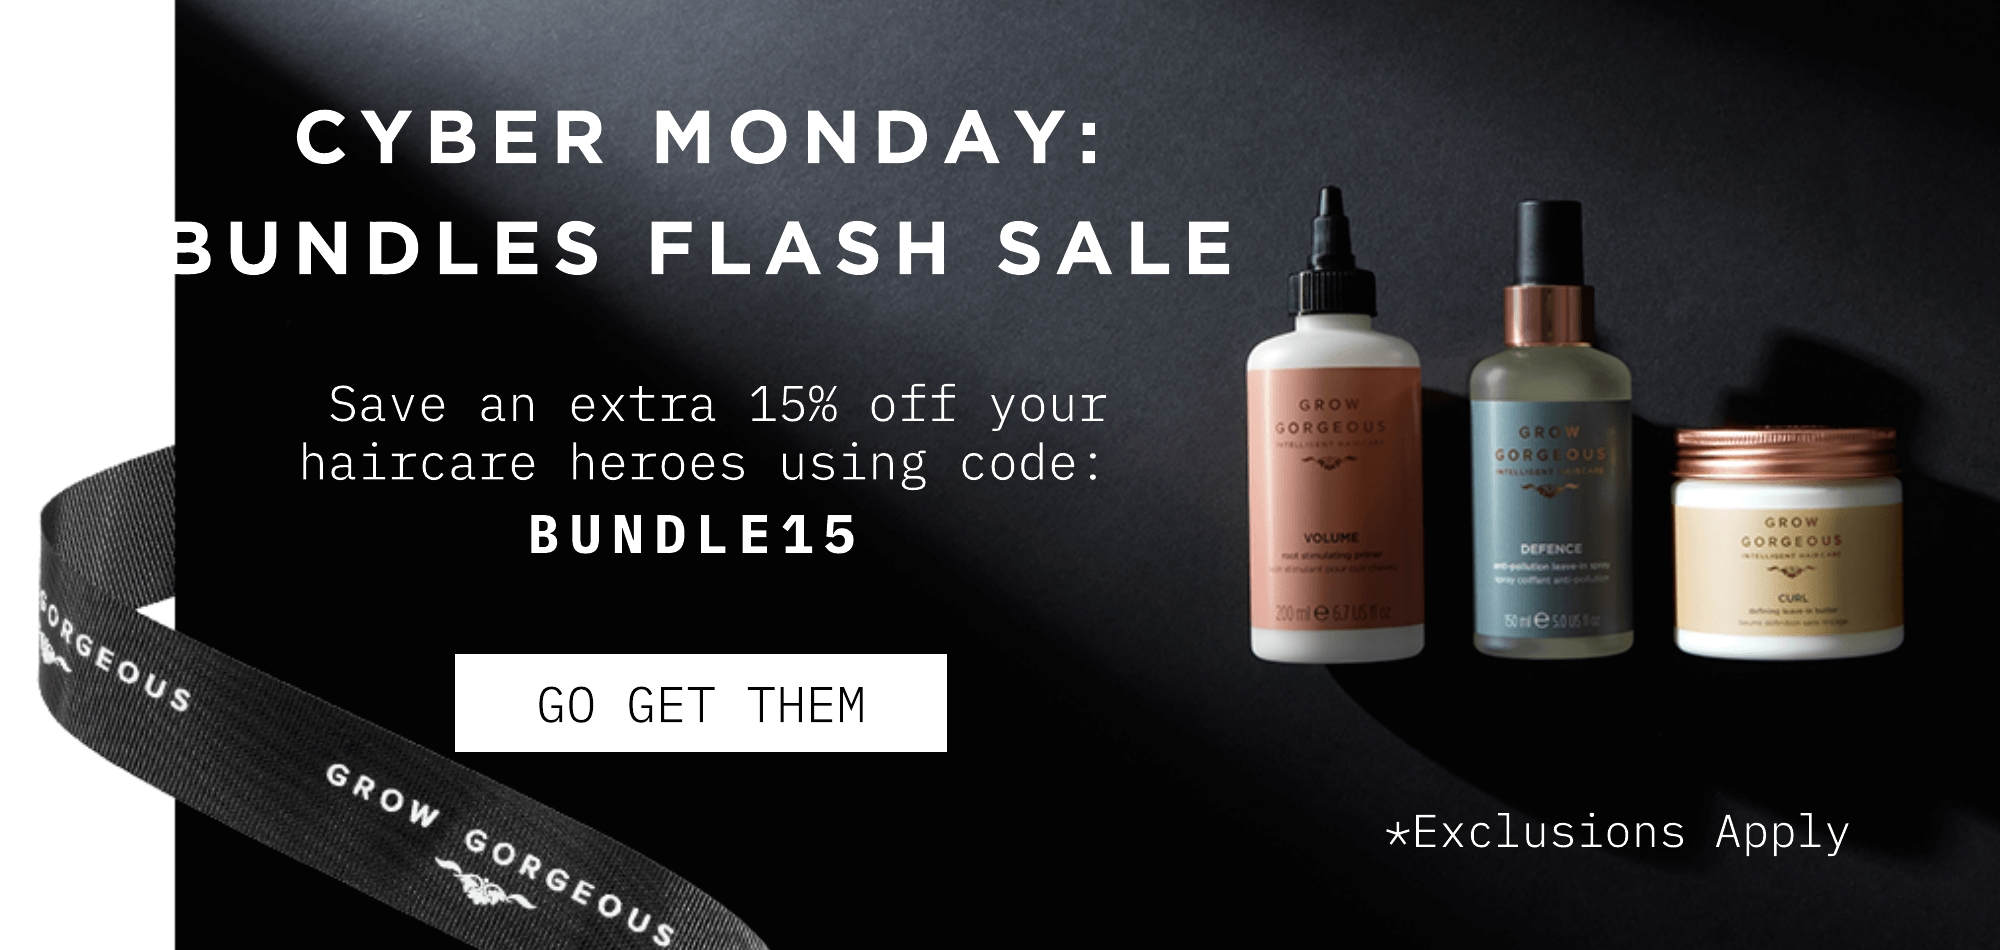 Save an extra 15% off on Bundles